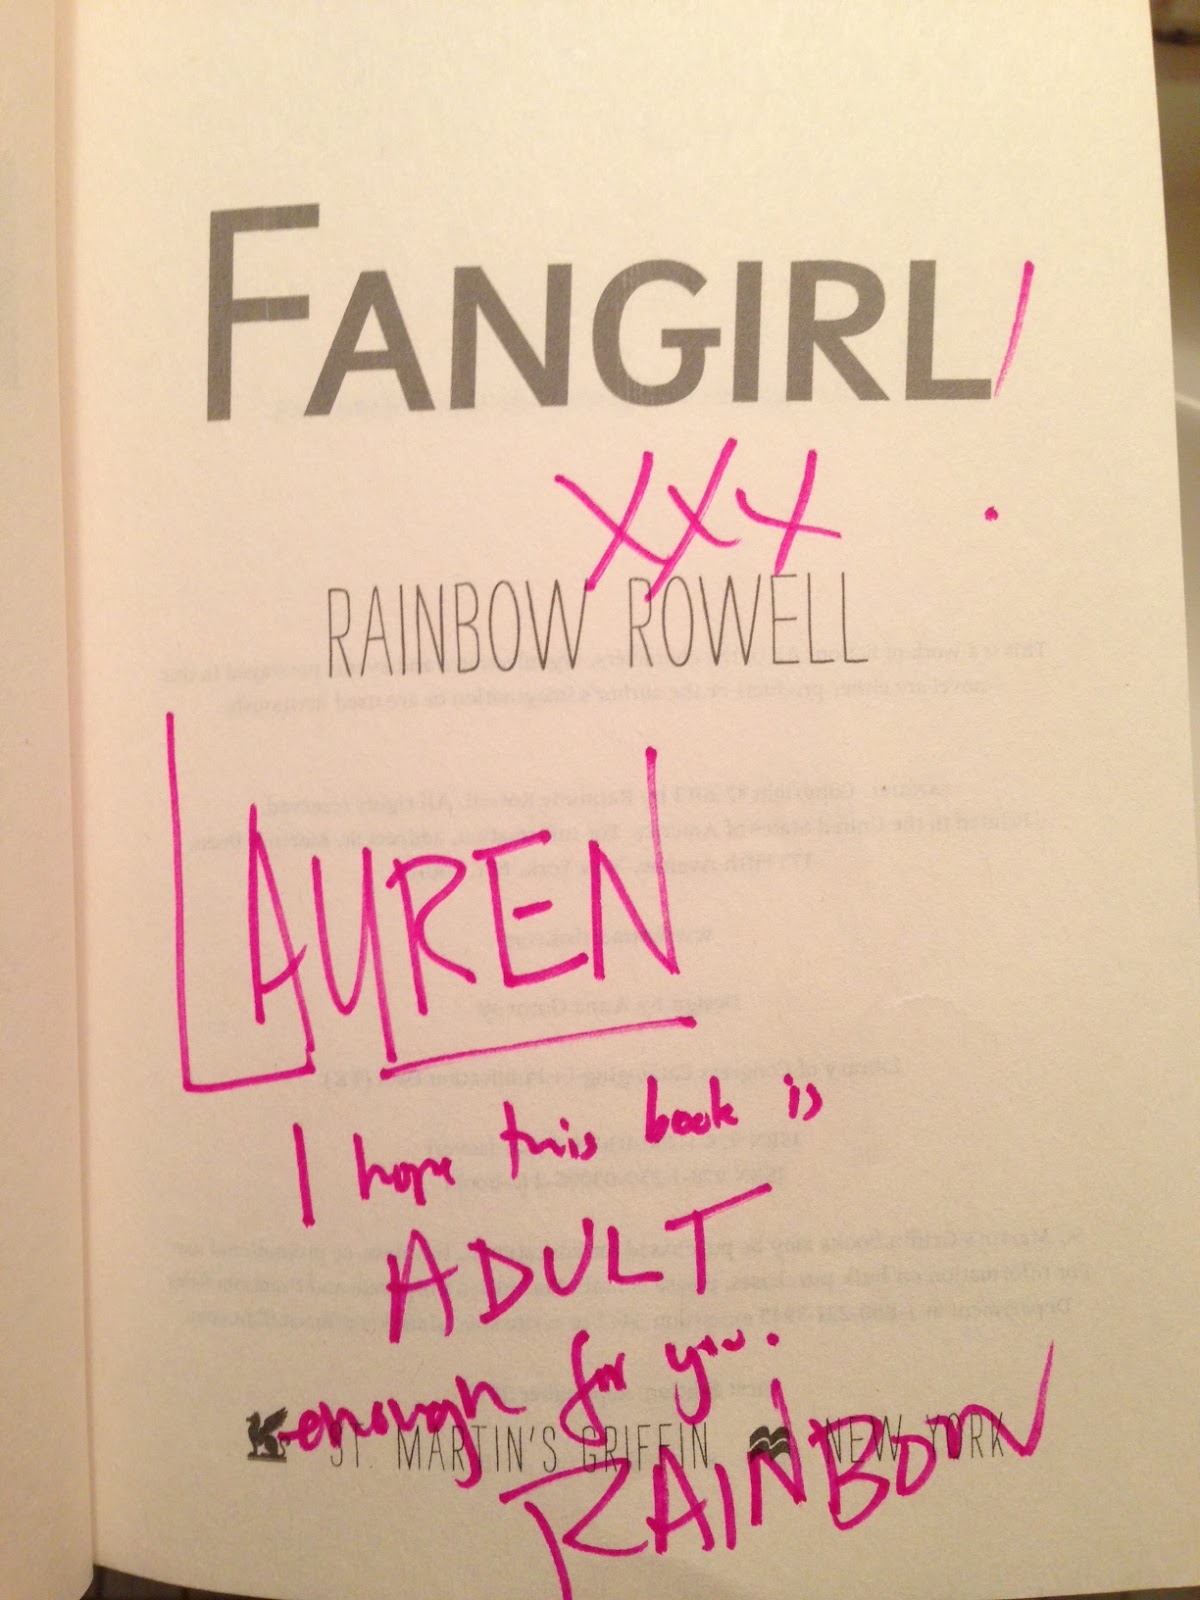 Love is not a triangle: Fangirl by Rainbow Rowell: A Thank